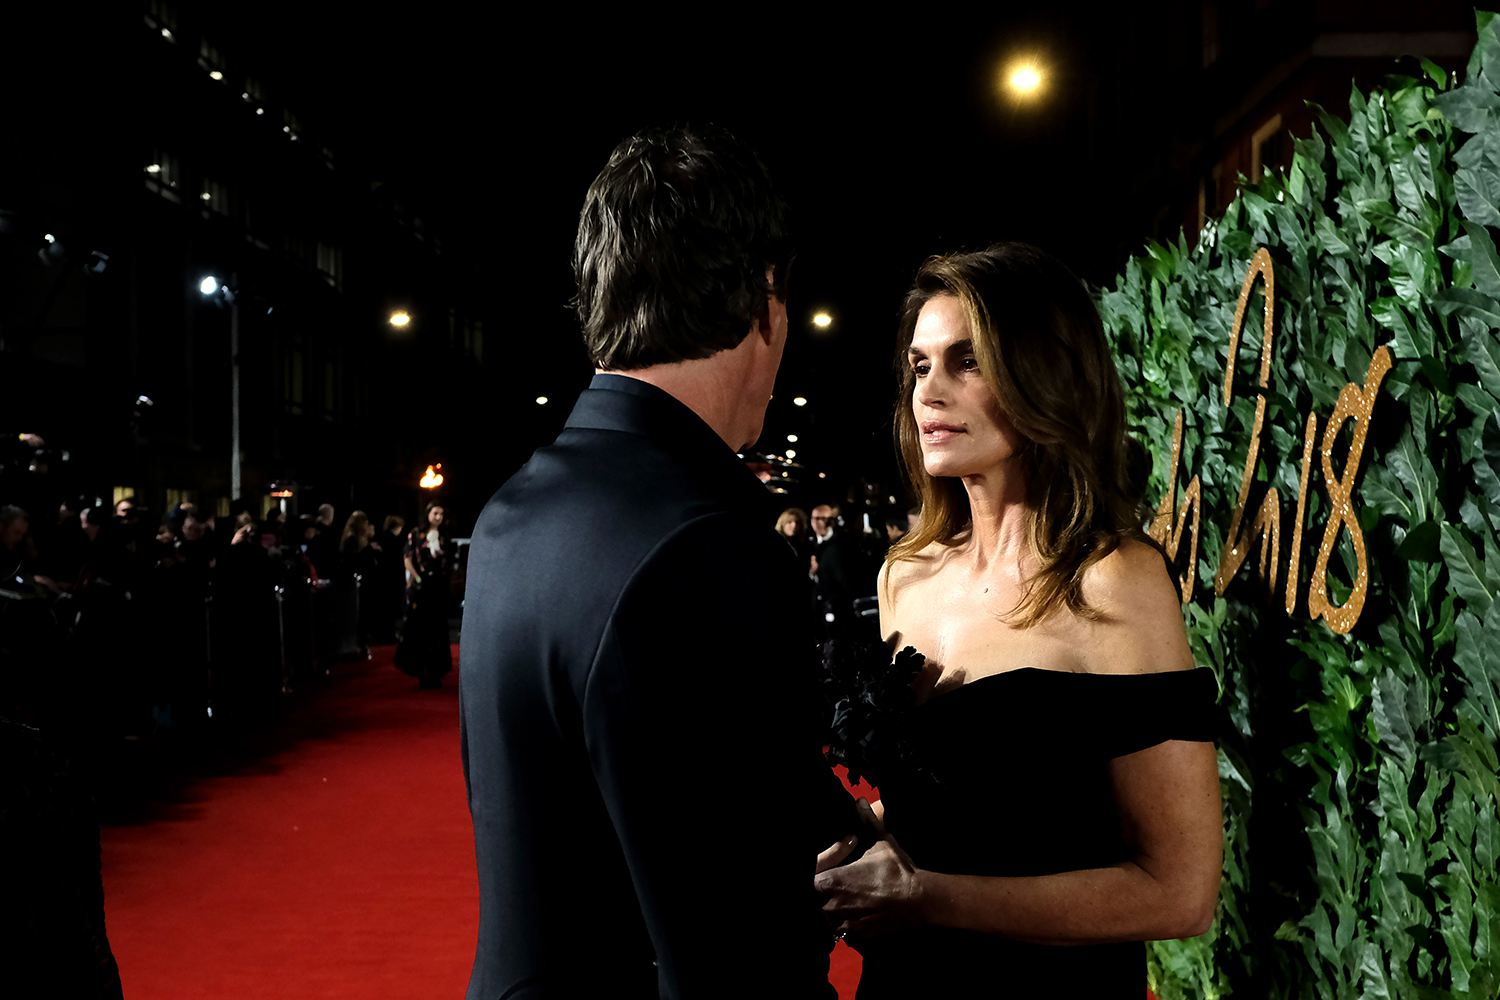 Cindy Crawford having a conversation at a red carpet event.